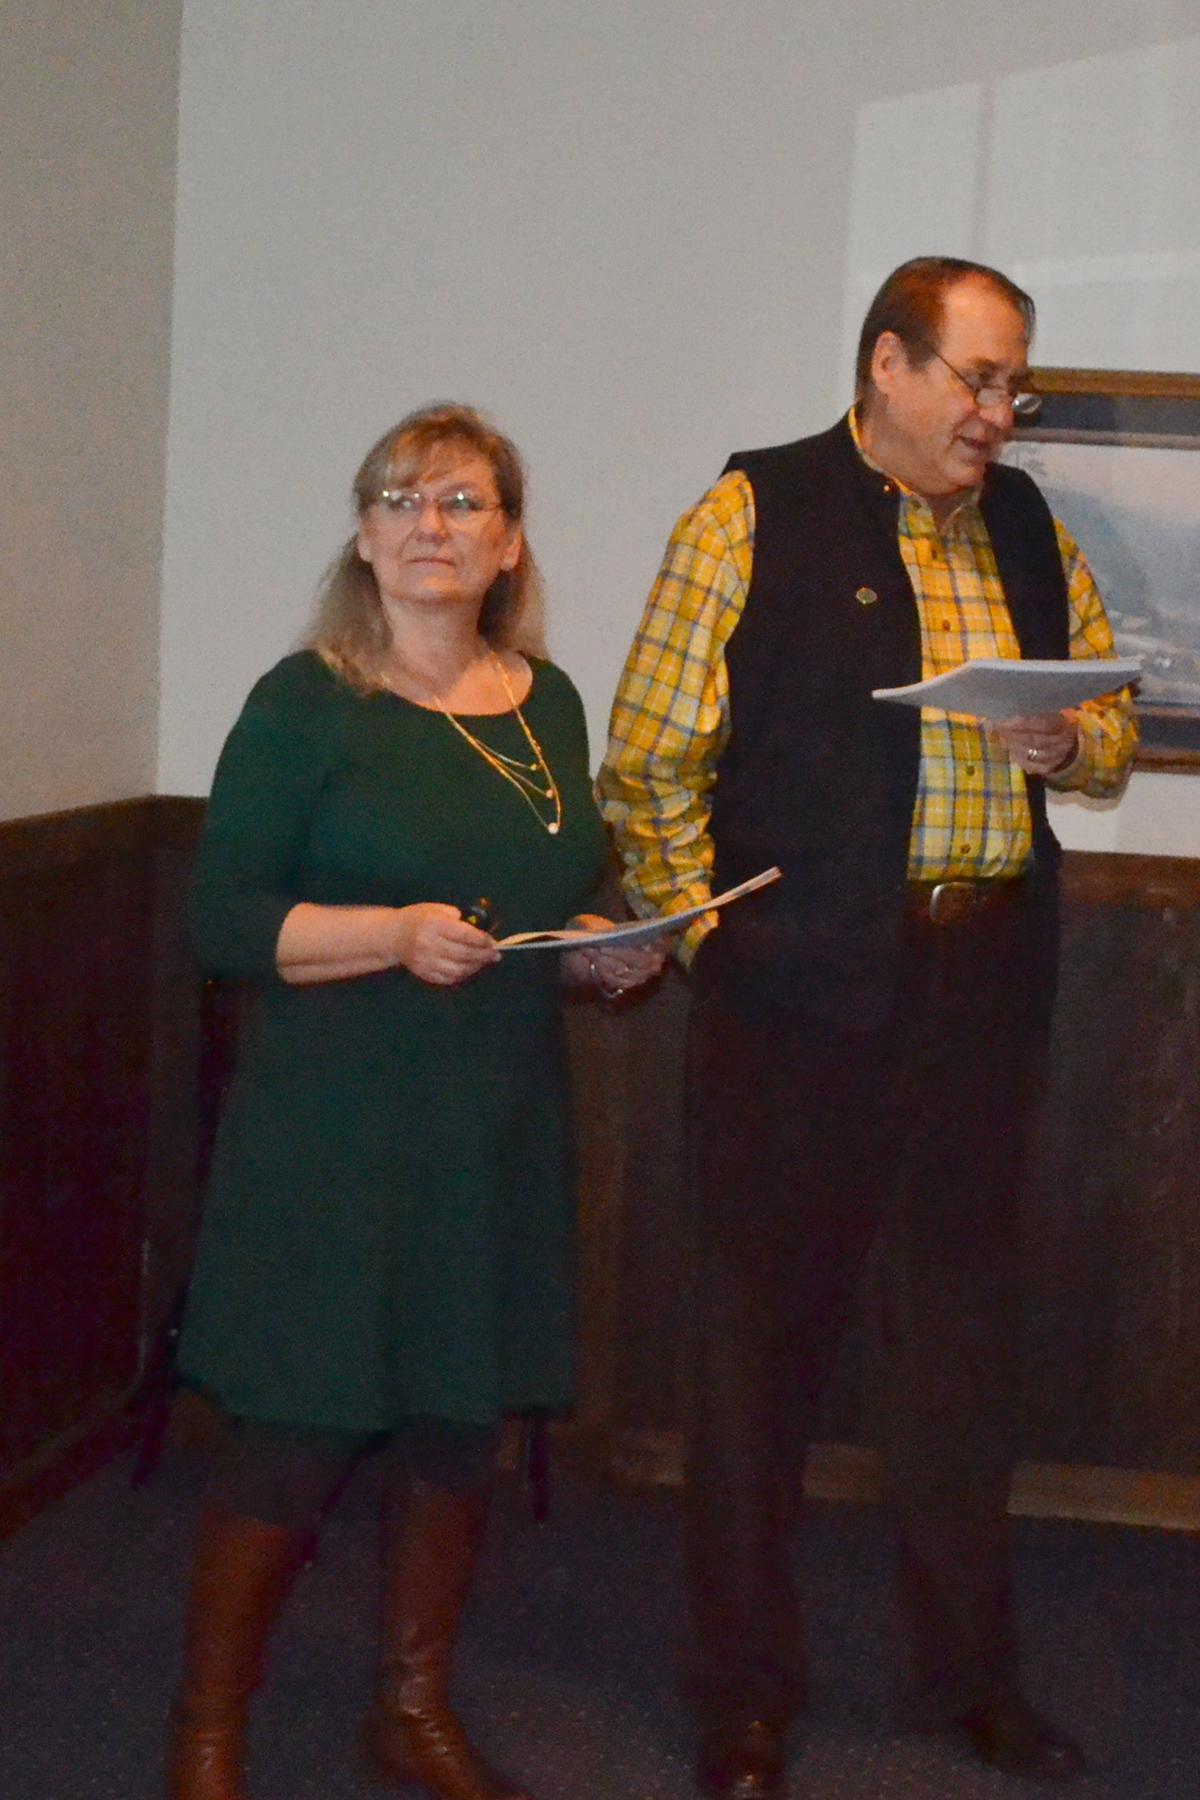 Suzzanne Kelley and Tom Isern shared tales of their travels at the annual meeting of the Ellendale Area Arts Council in January. Below is the Alfons Mucha painting of Saints Cyril and Methodius in the St. John Nepomucene Catholic Church in Pisek, N.D. Photo by Ken Schmierer